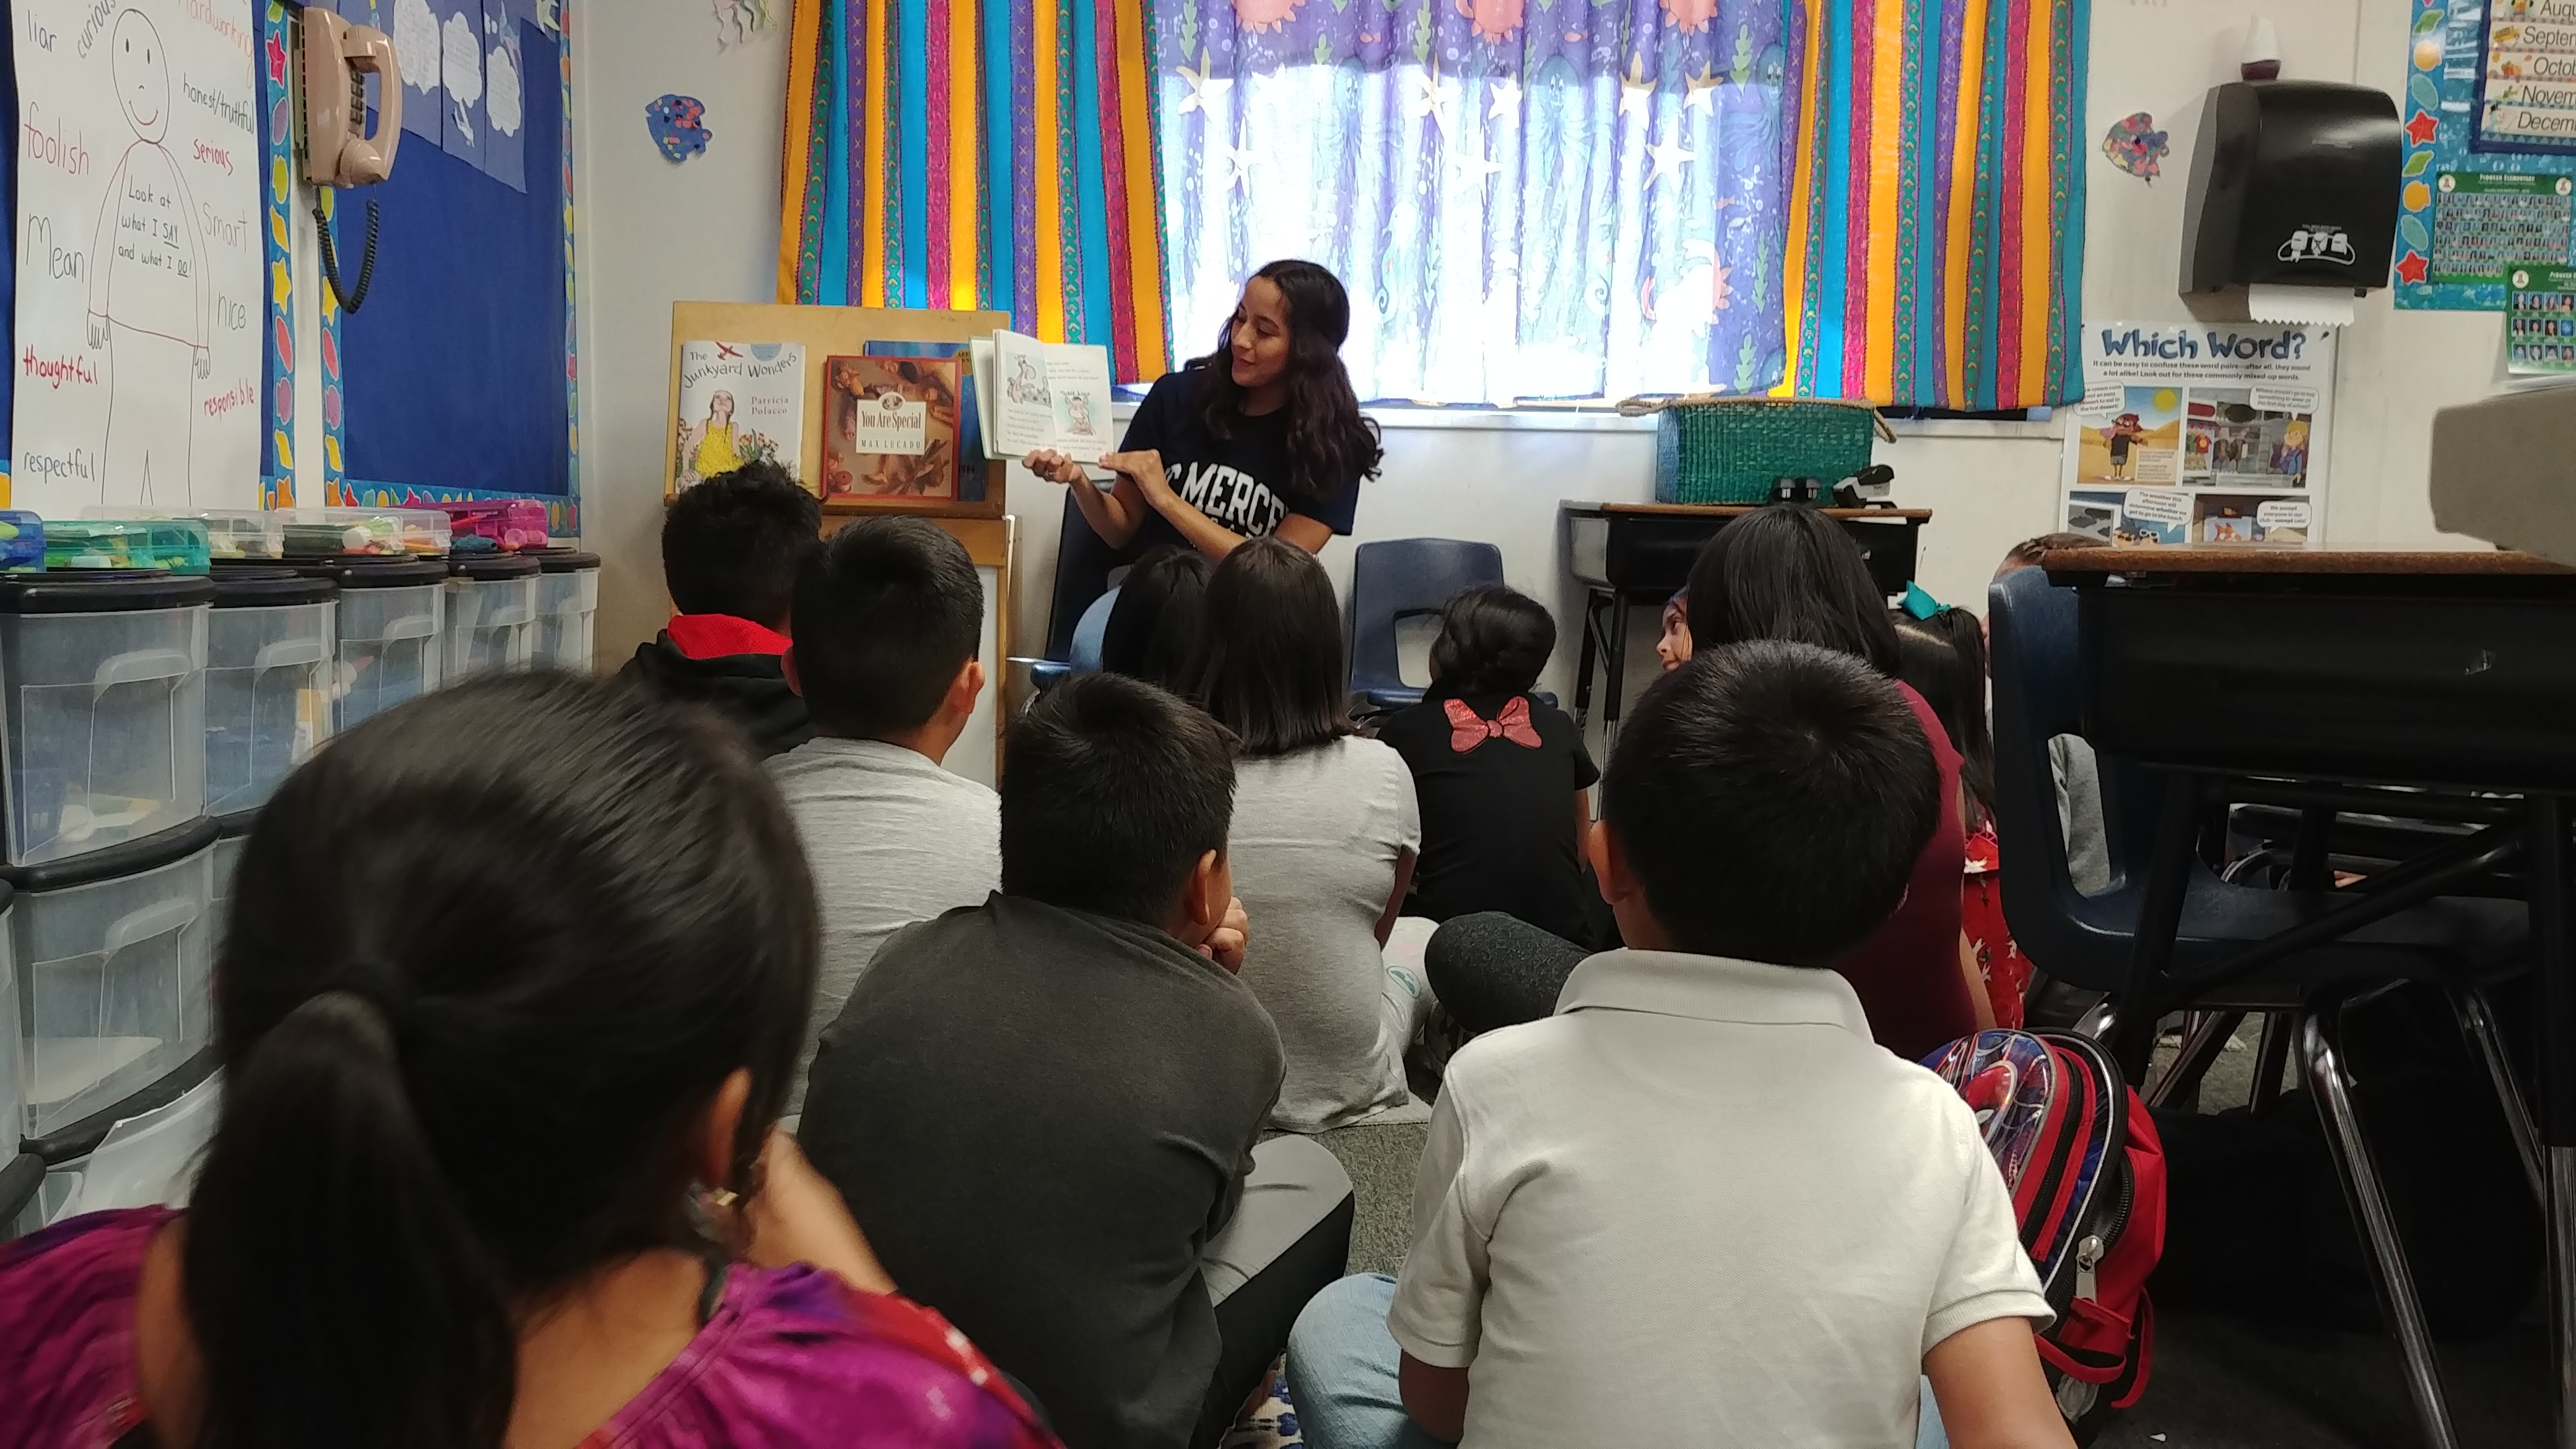 A volunteer reading to a class of children